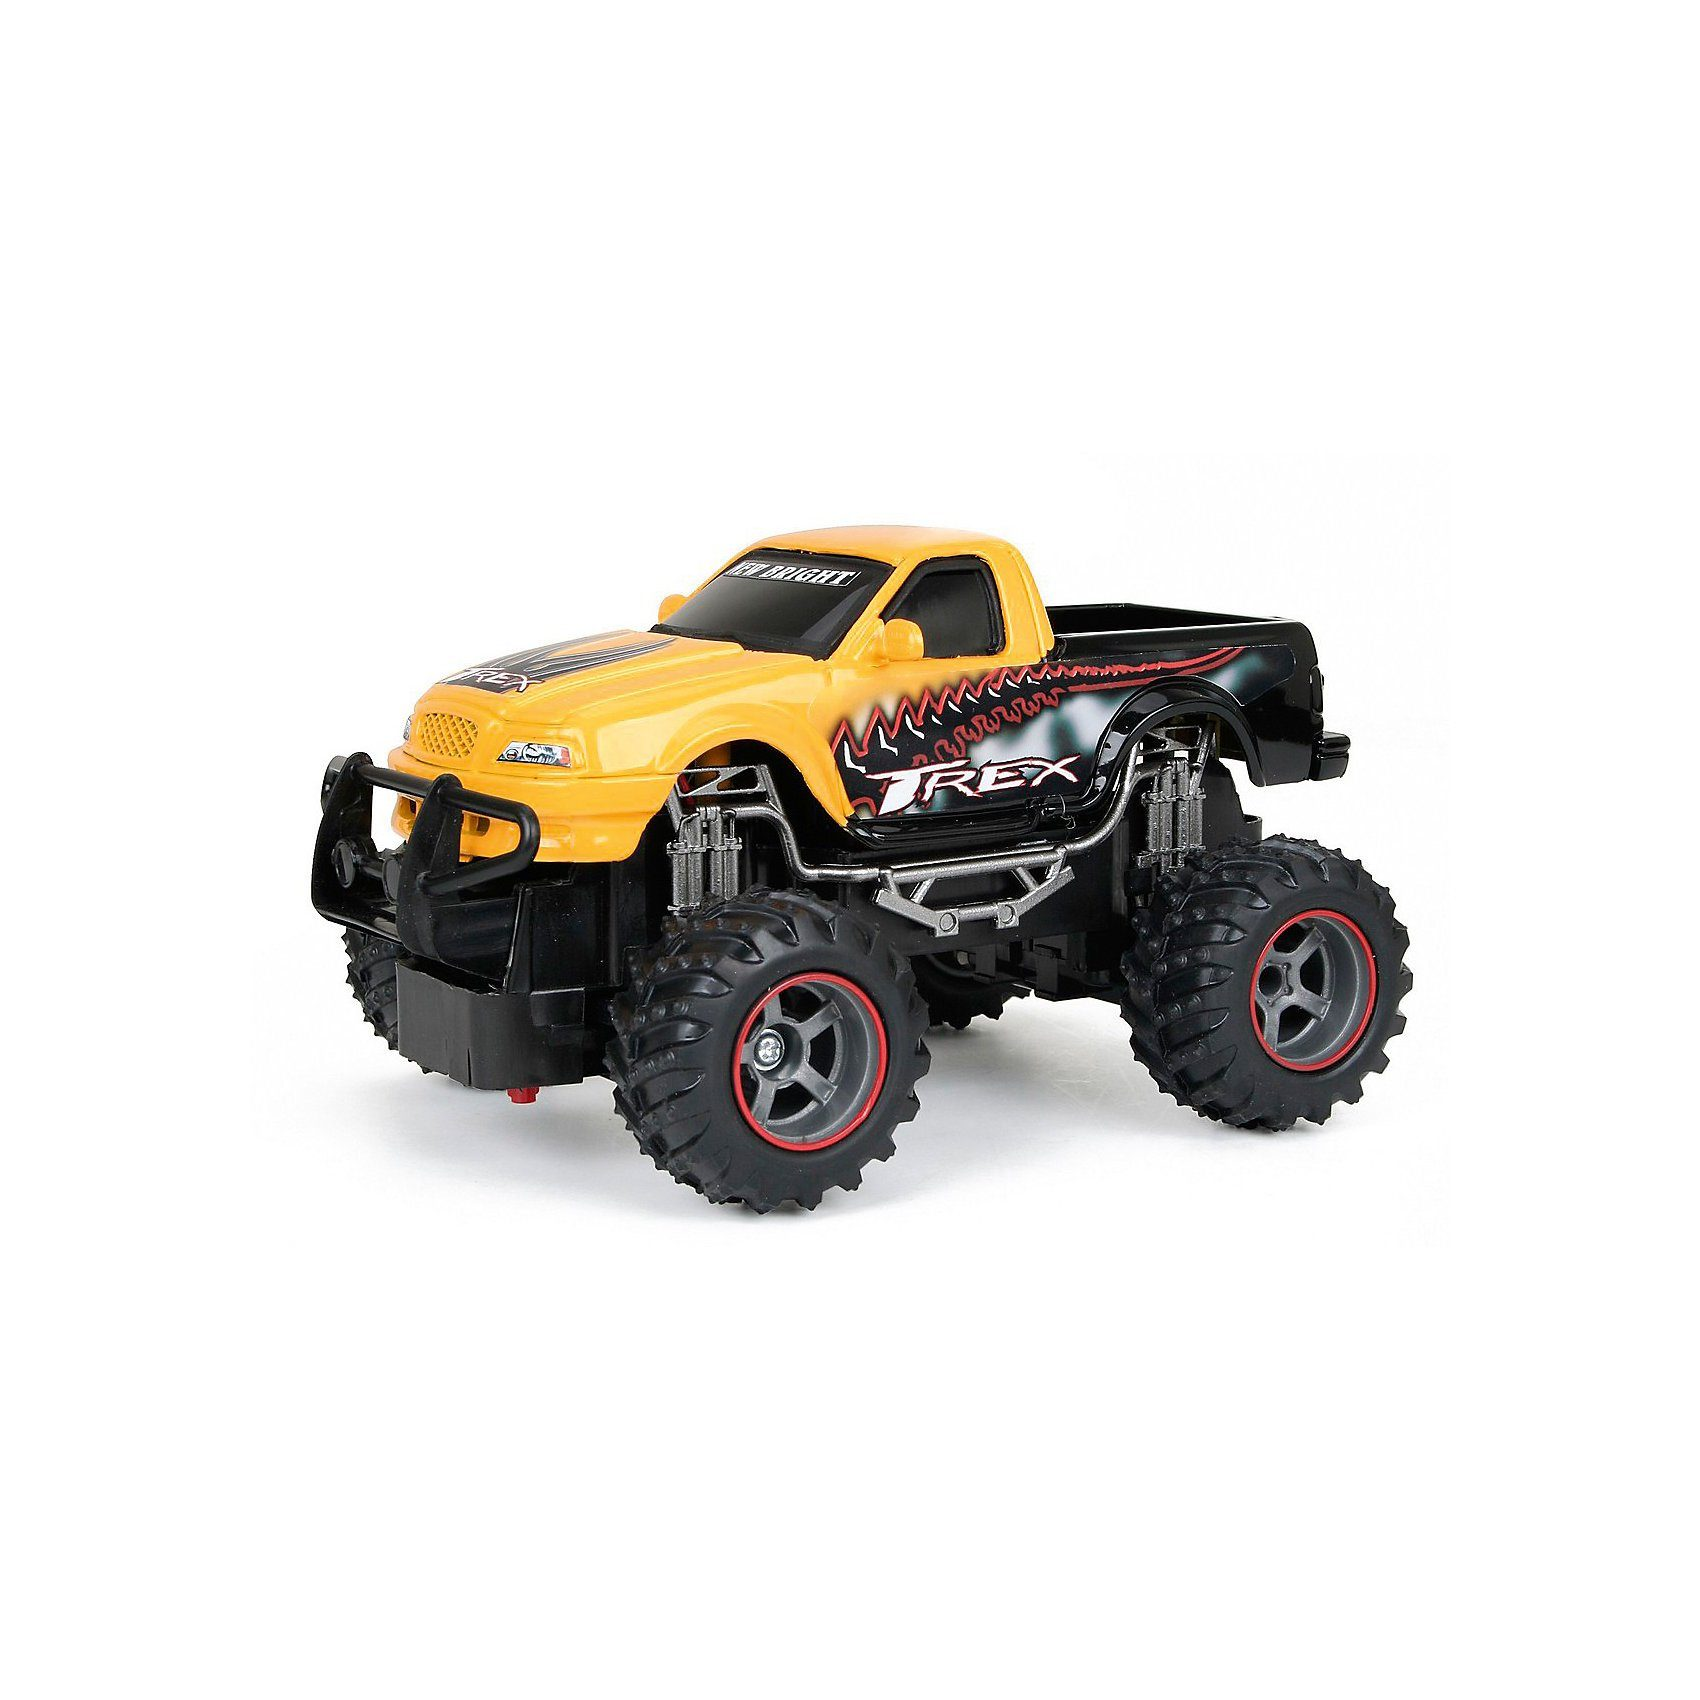 New Bright RC Jeep Predator Truck 1:24